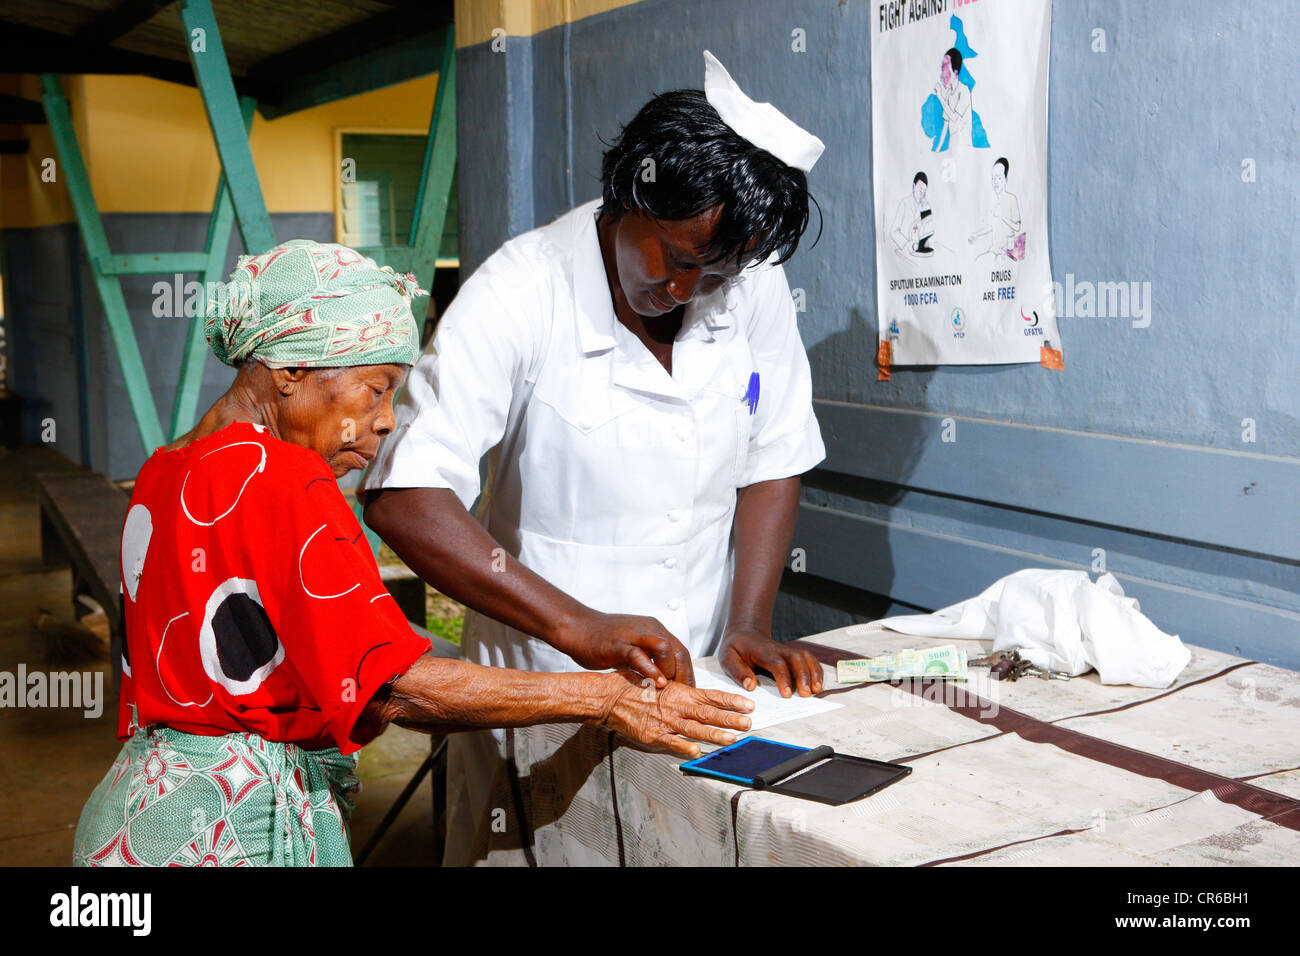 Leper signing with a thumb print, TB and leprosy settlement, Manyemen, Cameroon, Africa - Stock Image